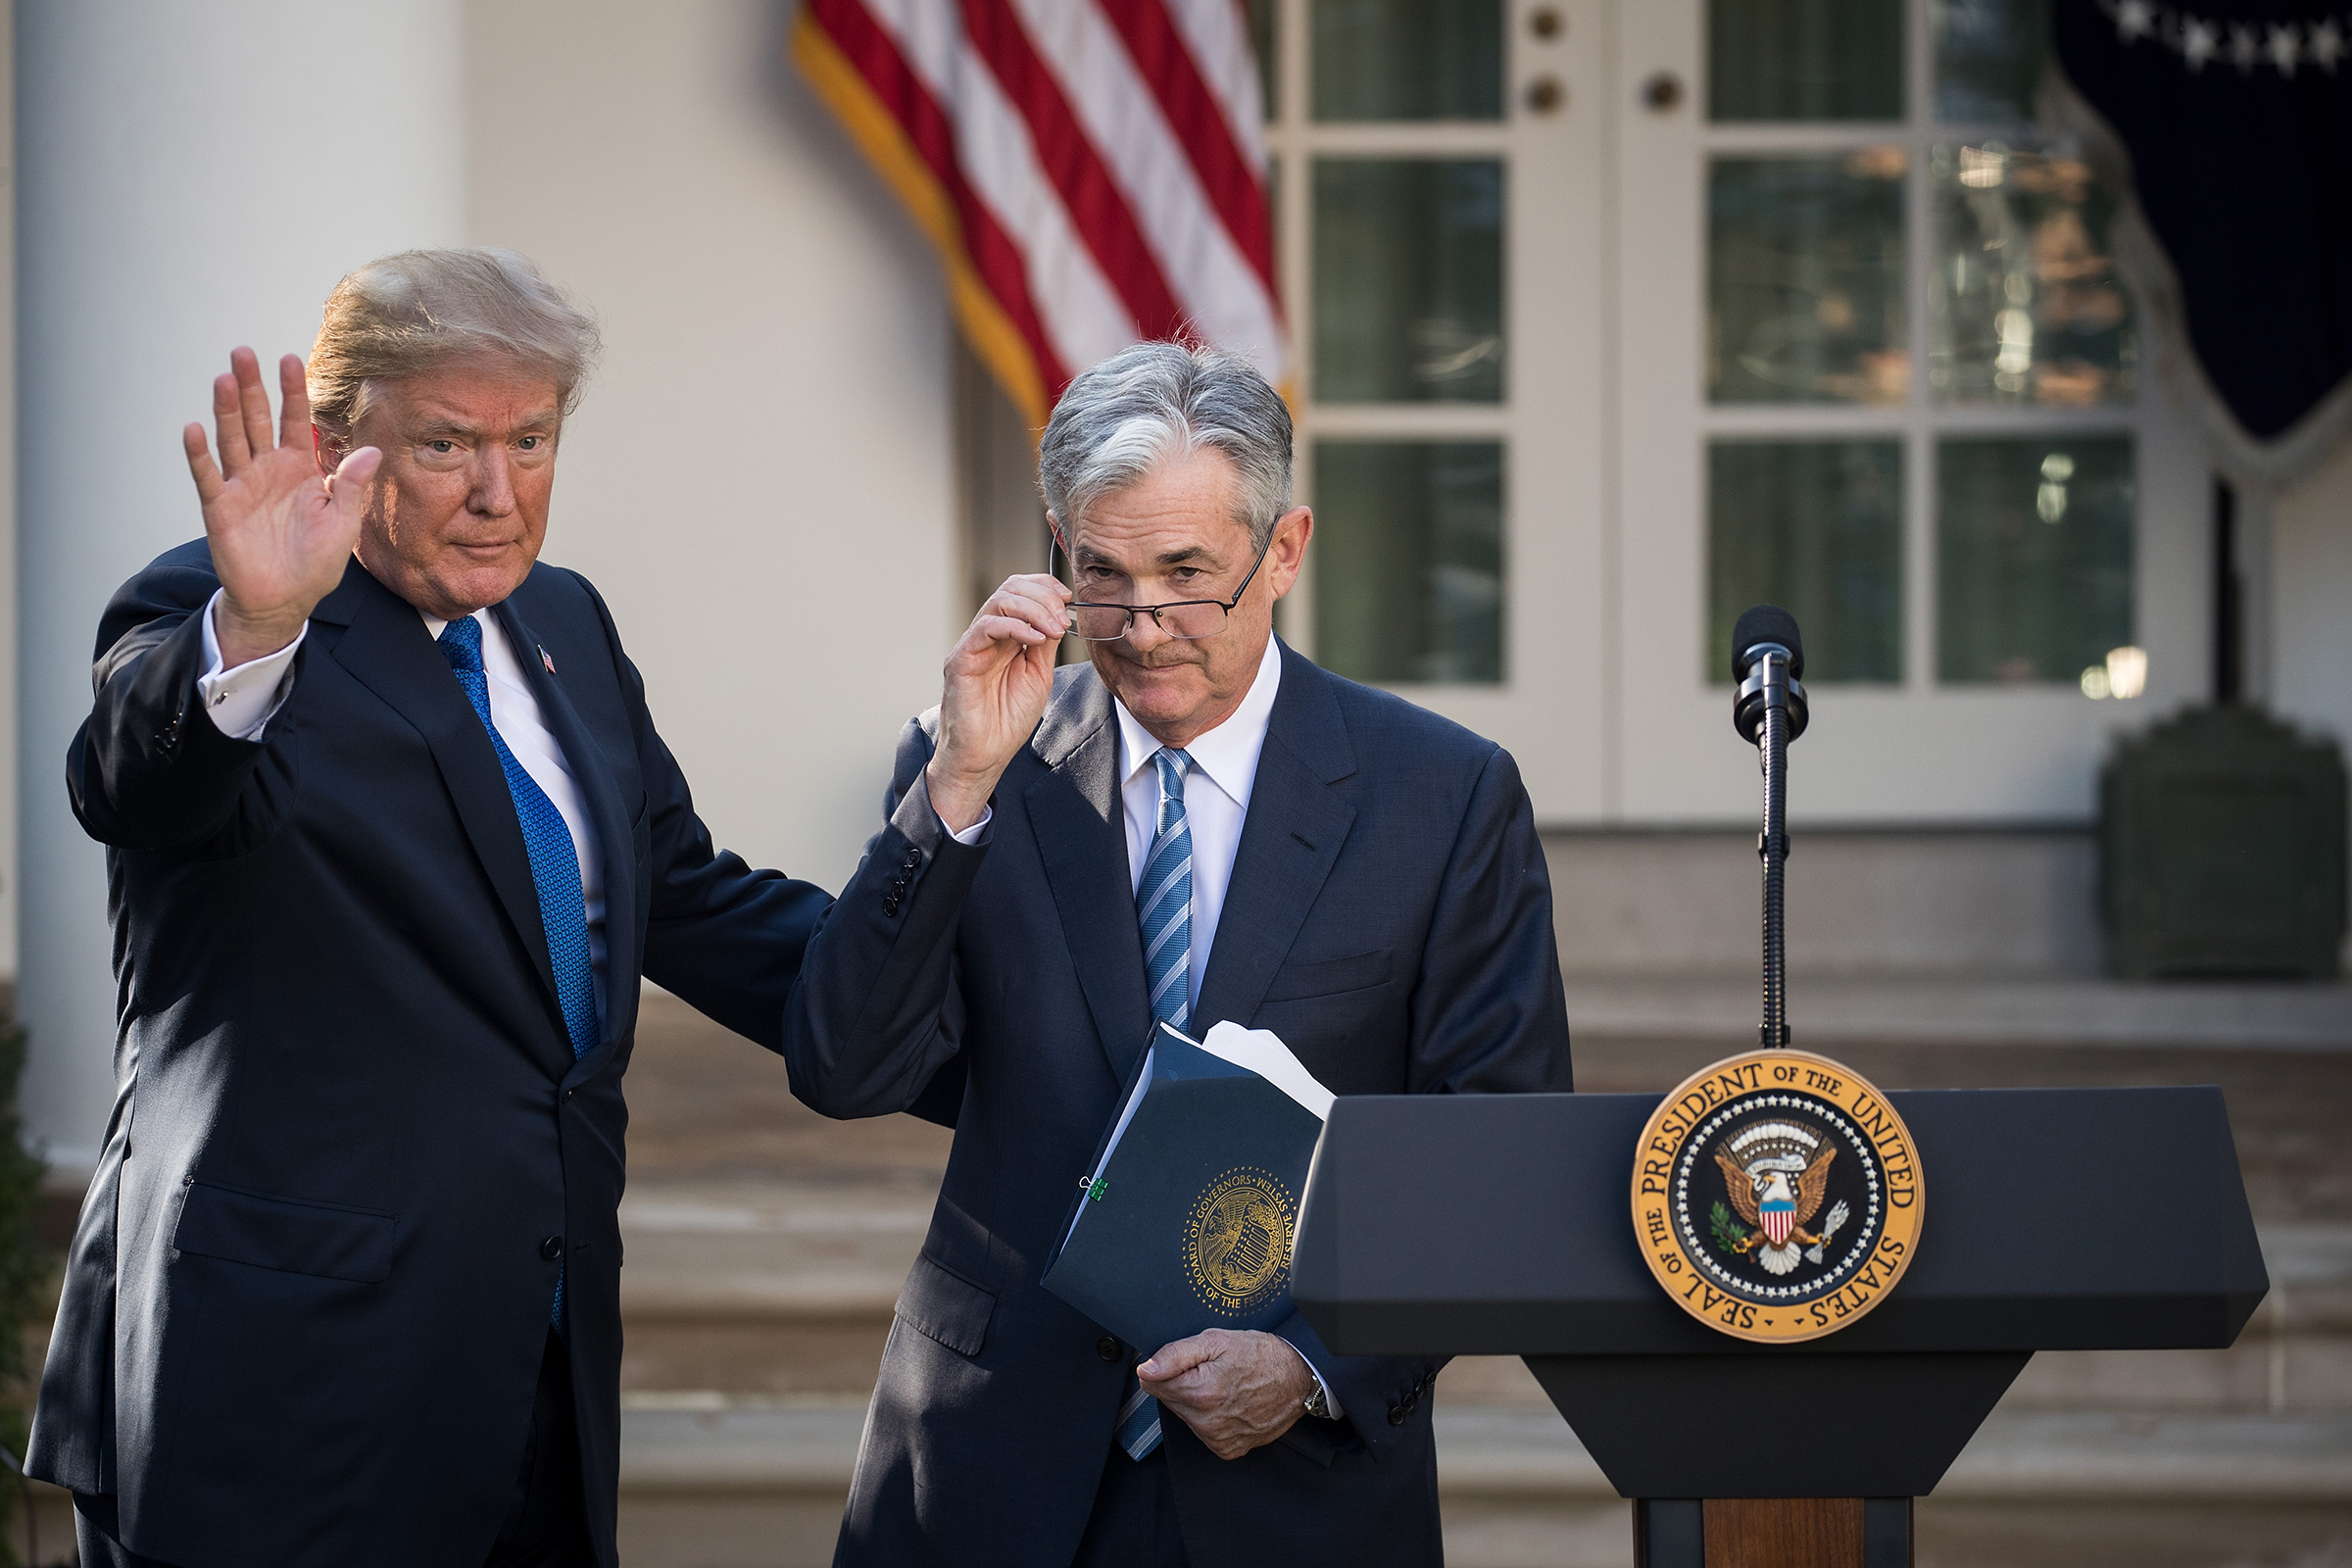 Trump introduces Powell as his nominee for chairman of the Fed in 2017